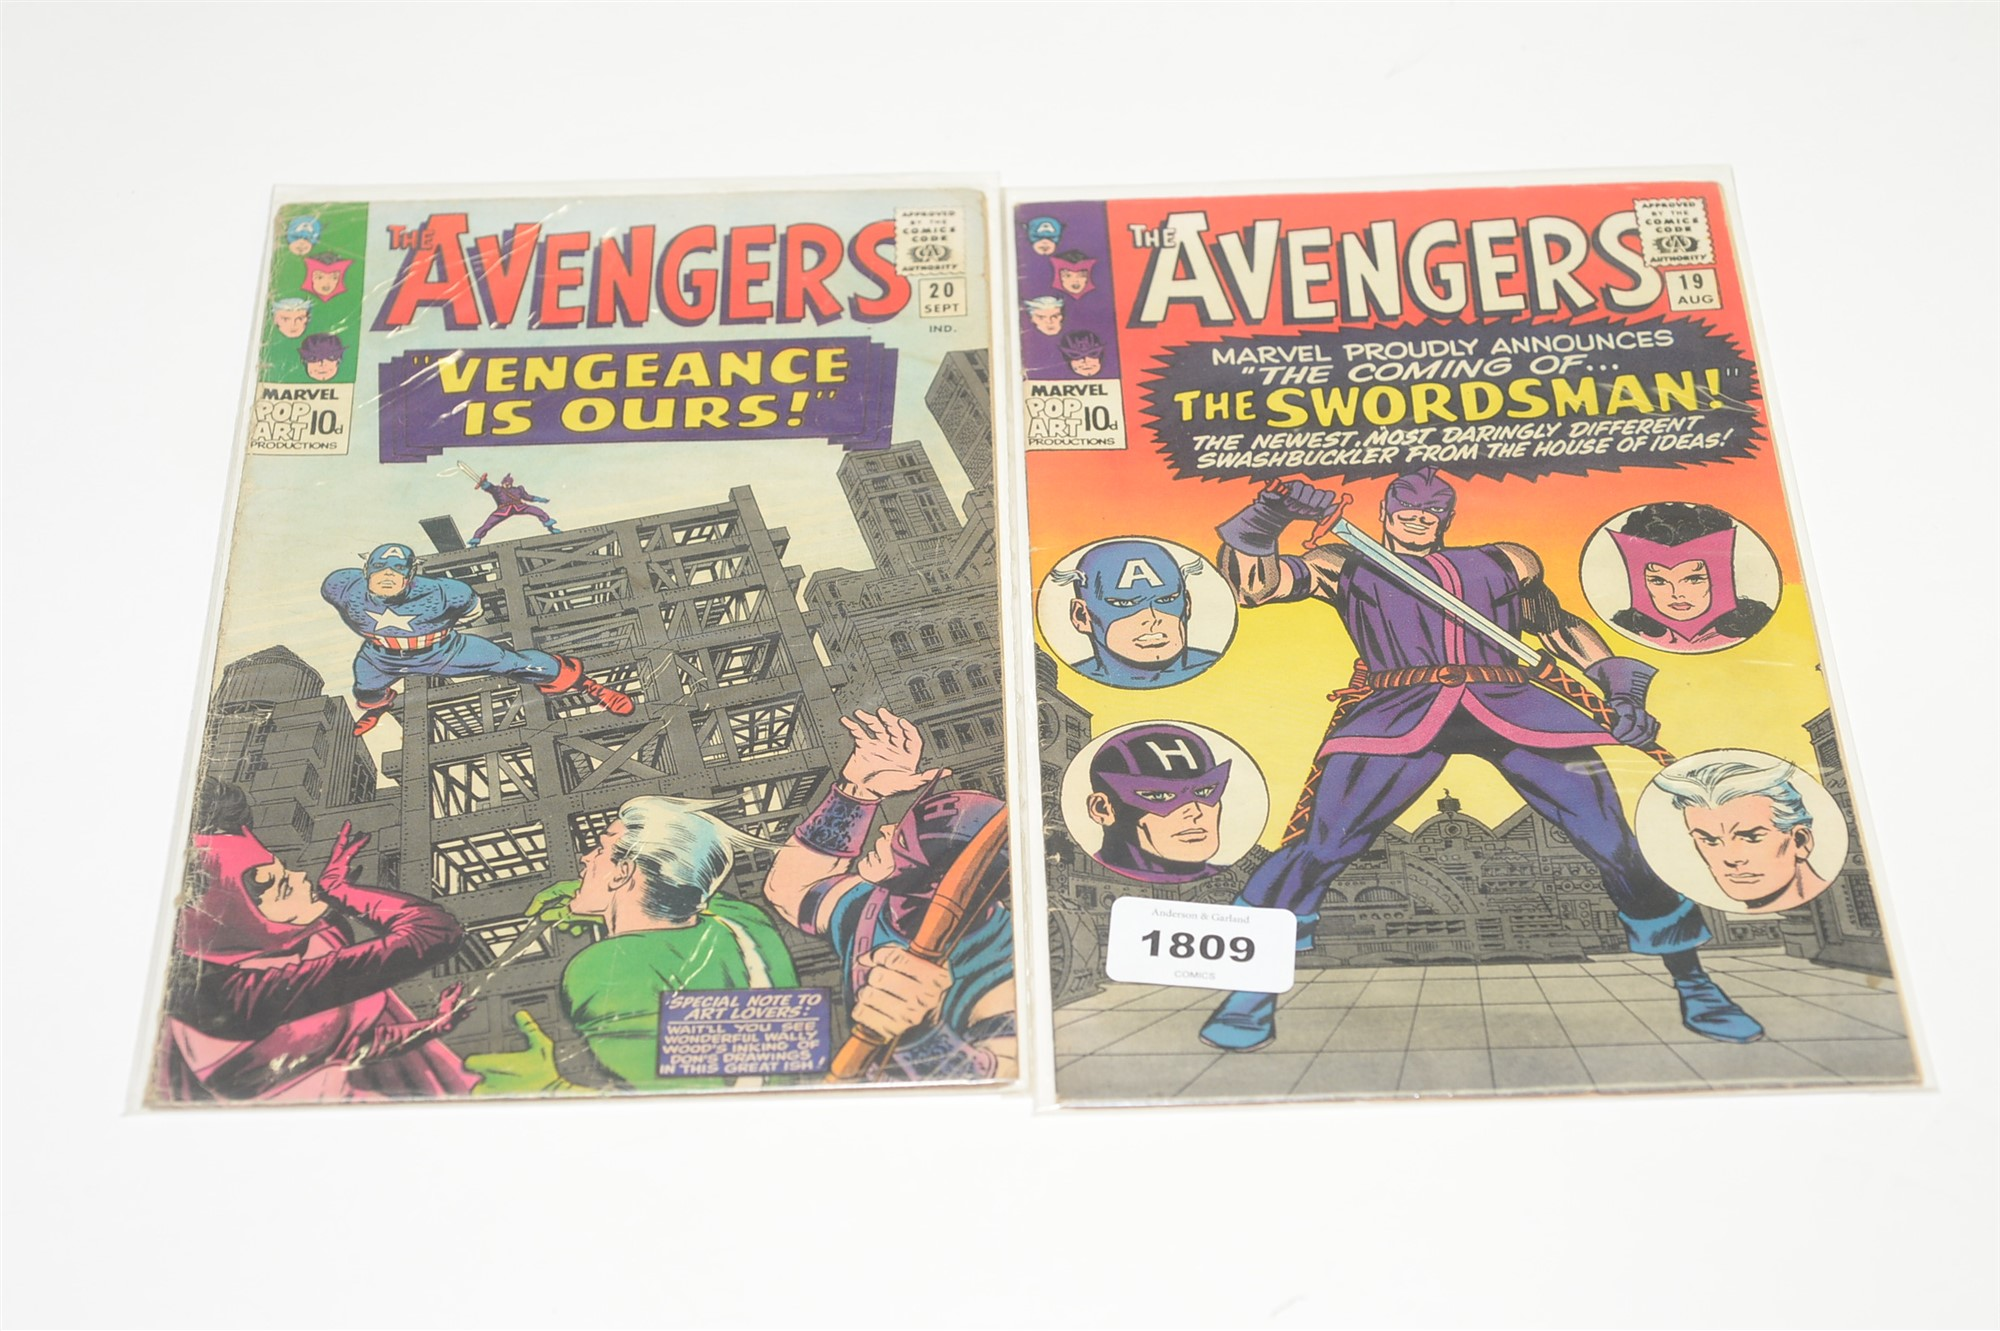 The Avengers No's. 3, 5, 11, 13, 14, 17 and 18 - Image 6 of 7